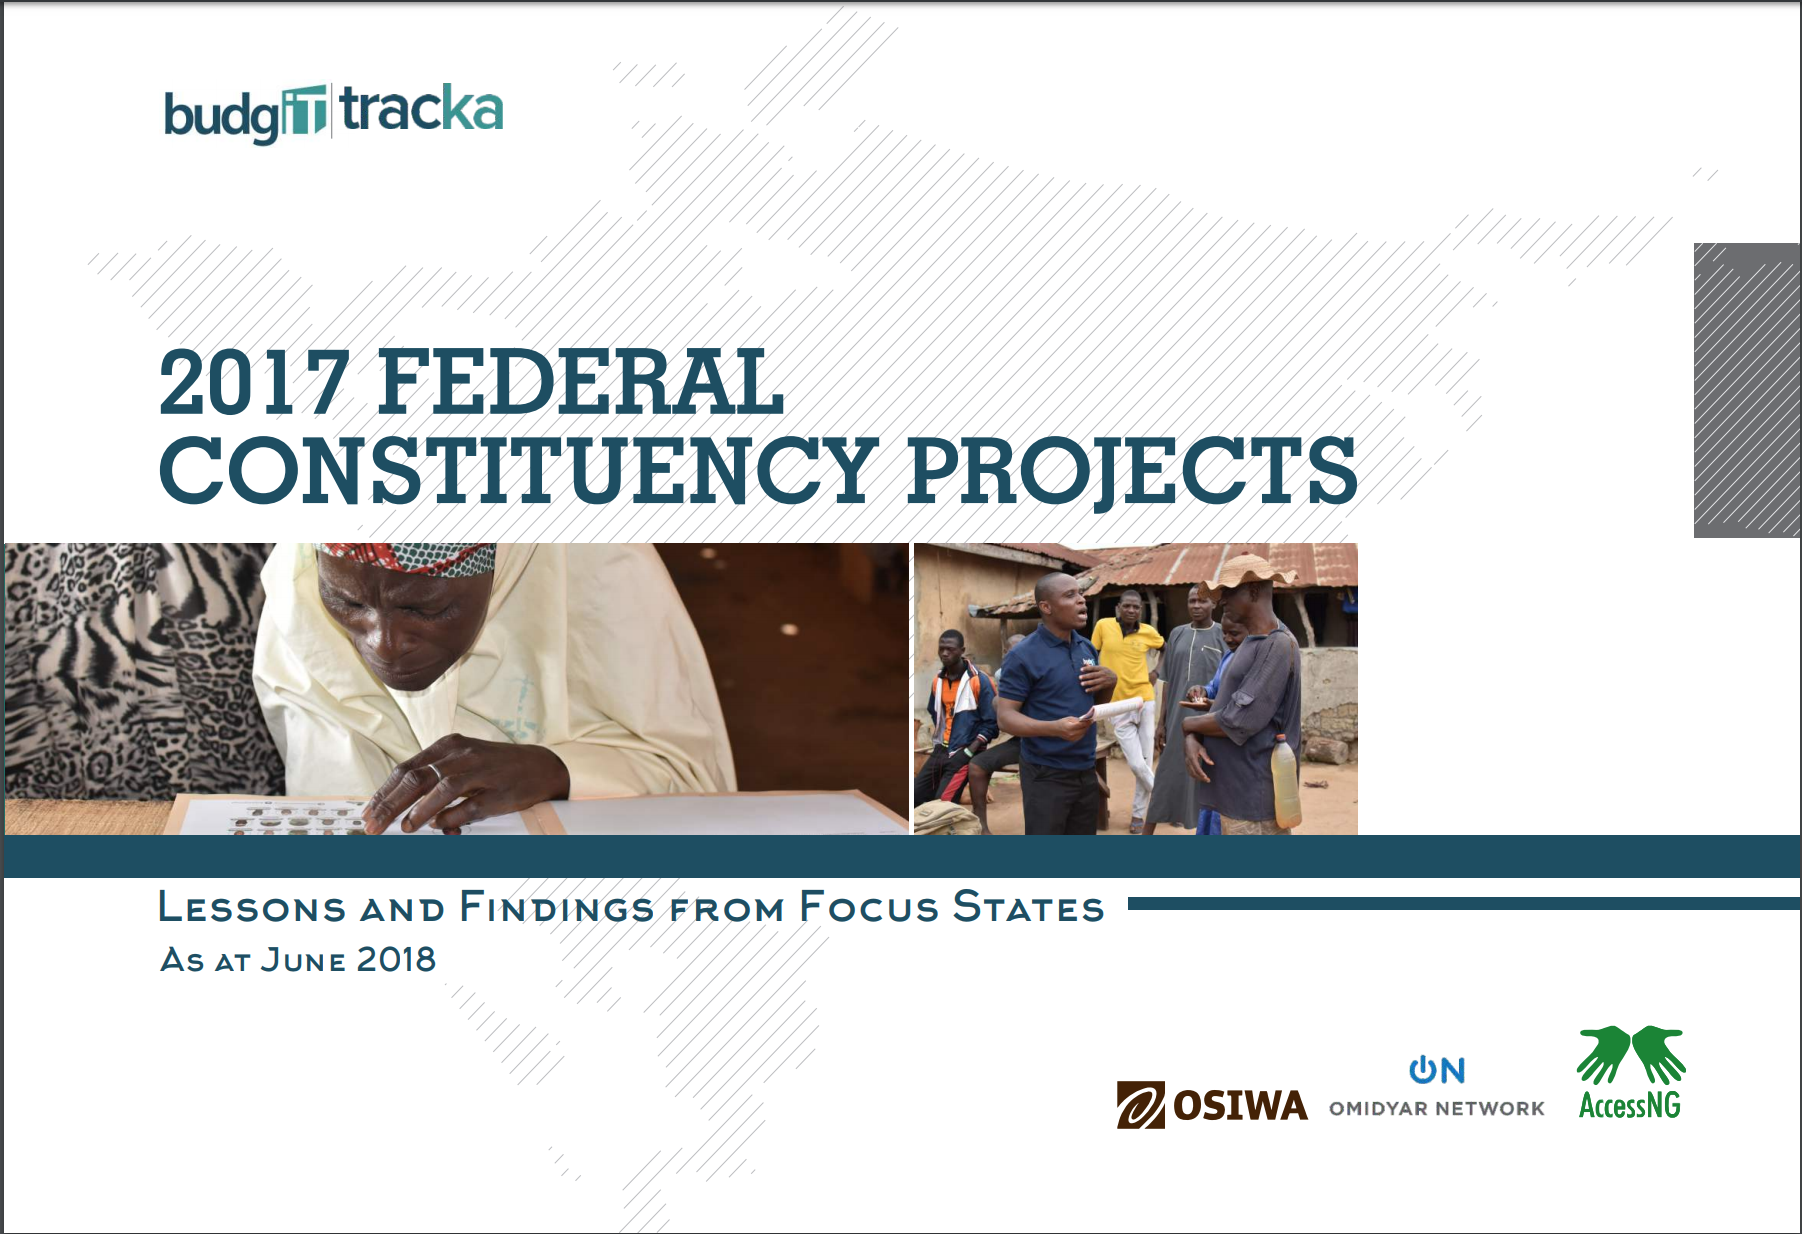 2017 Federal Constituency Projects Report